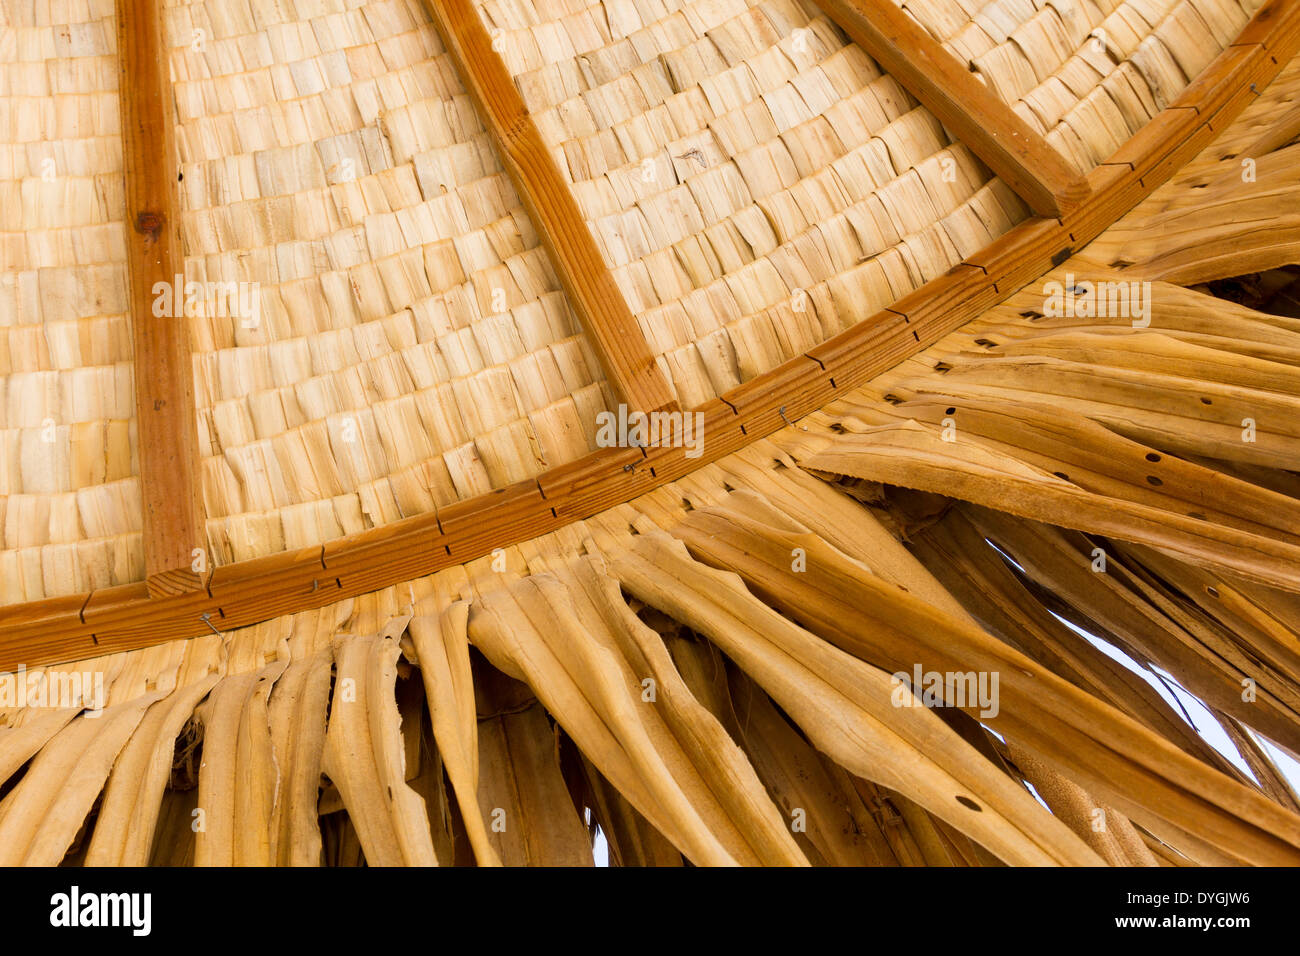 Closeup of round thatched roof hut showing structure of woven palm thatch - Stock Image